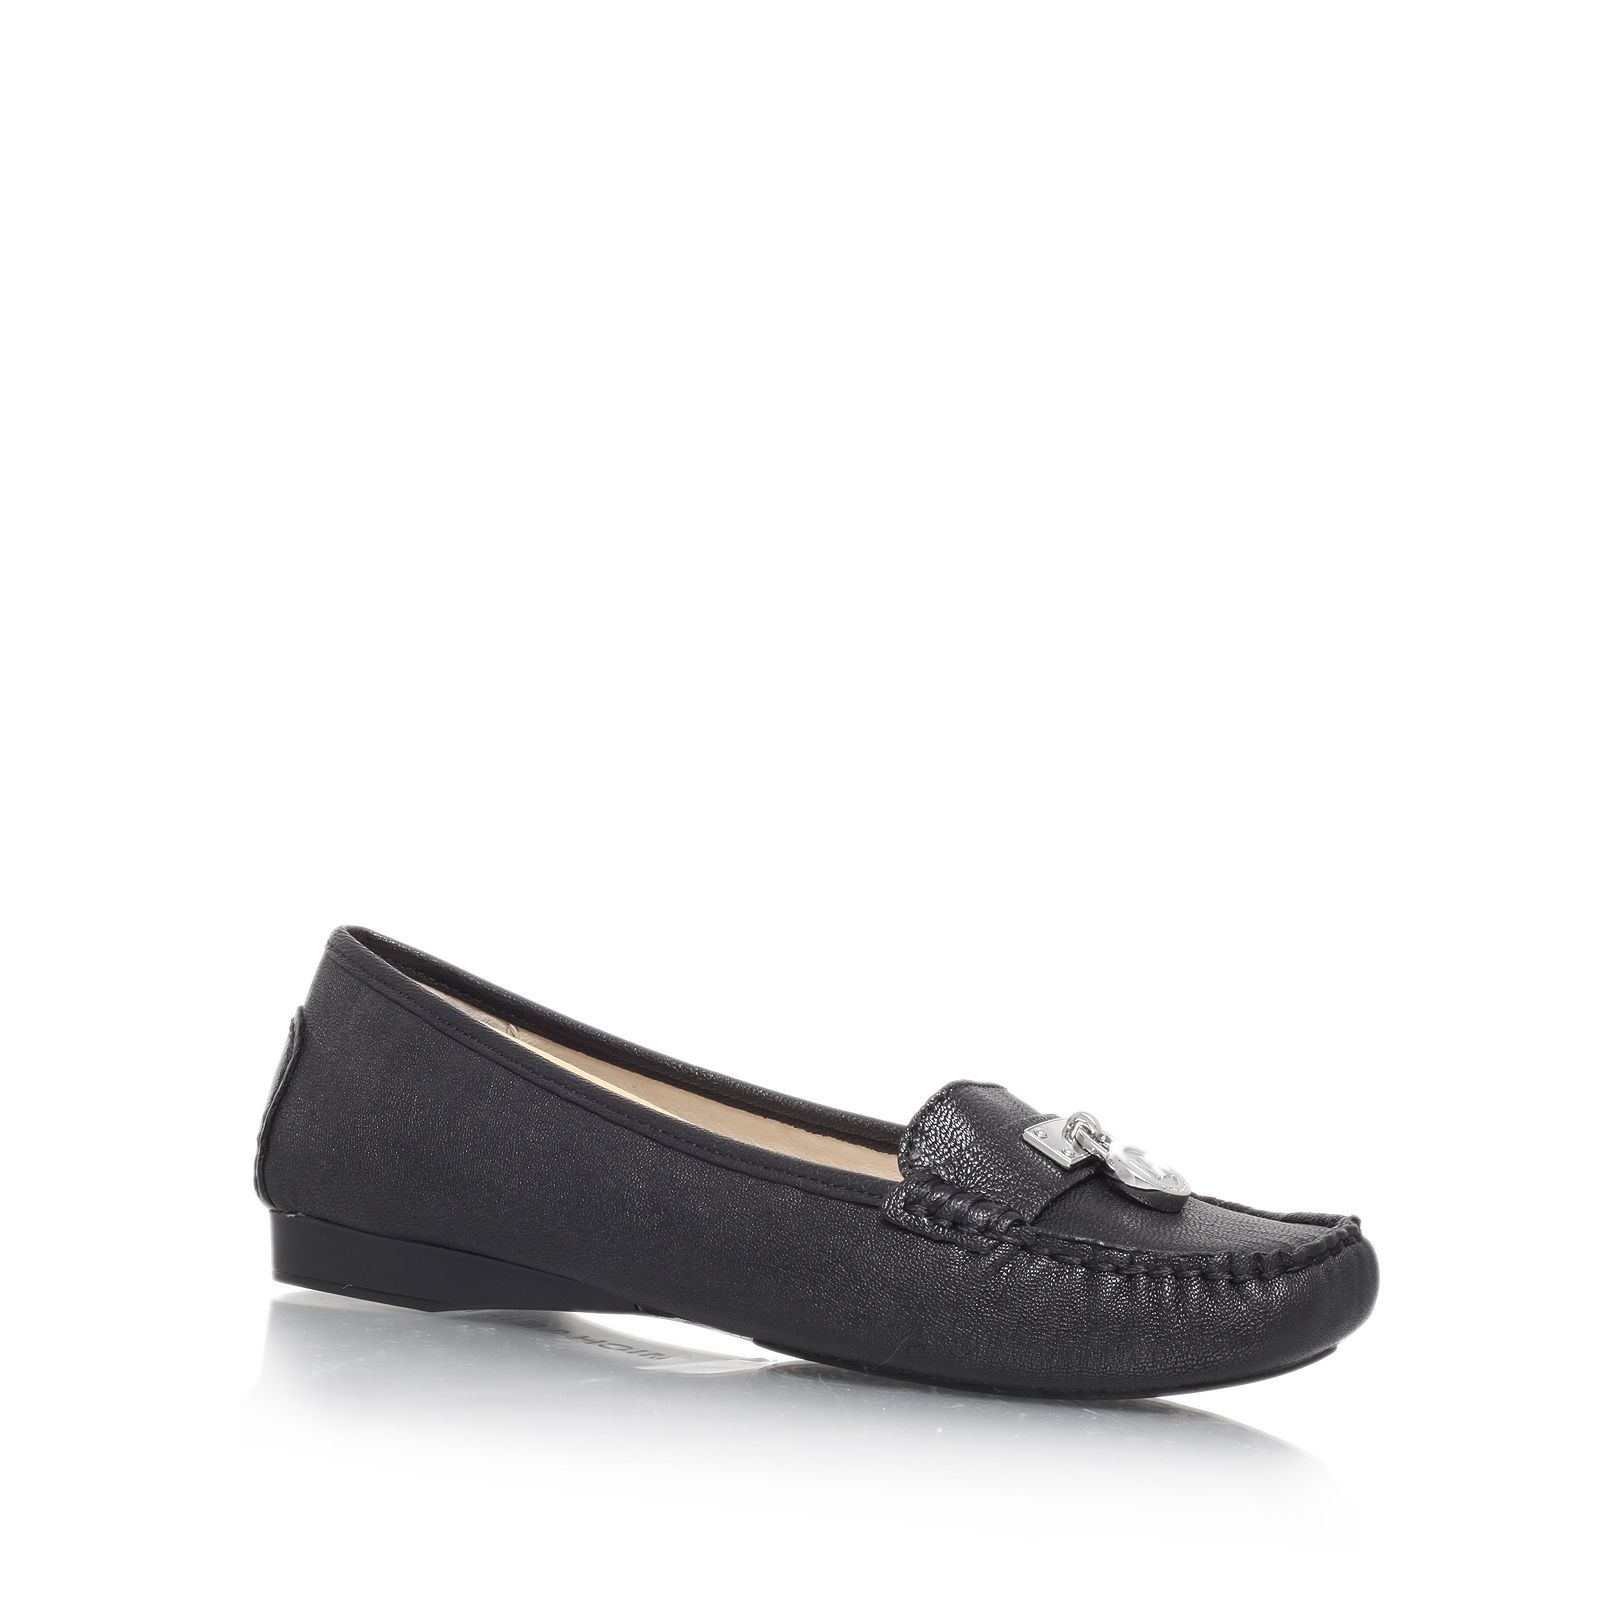 Hamilton loafer shoes